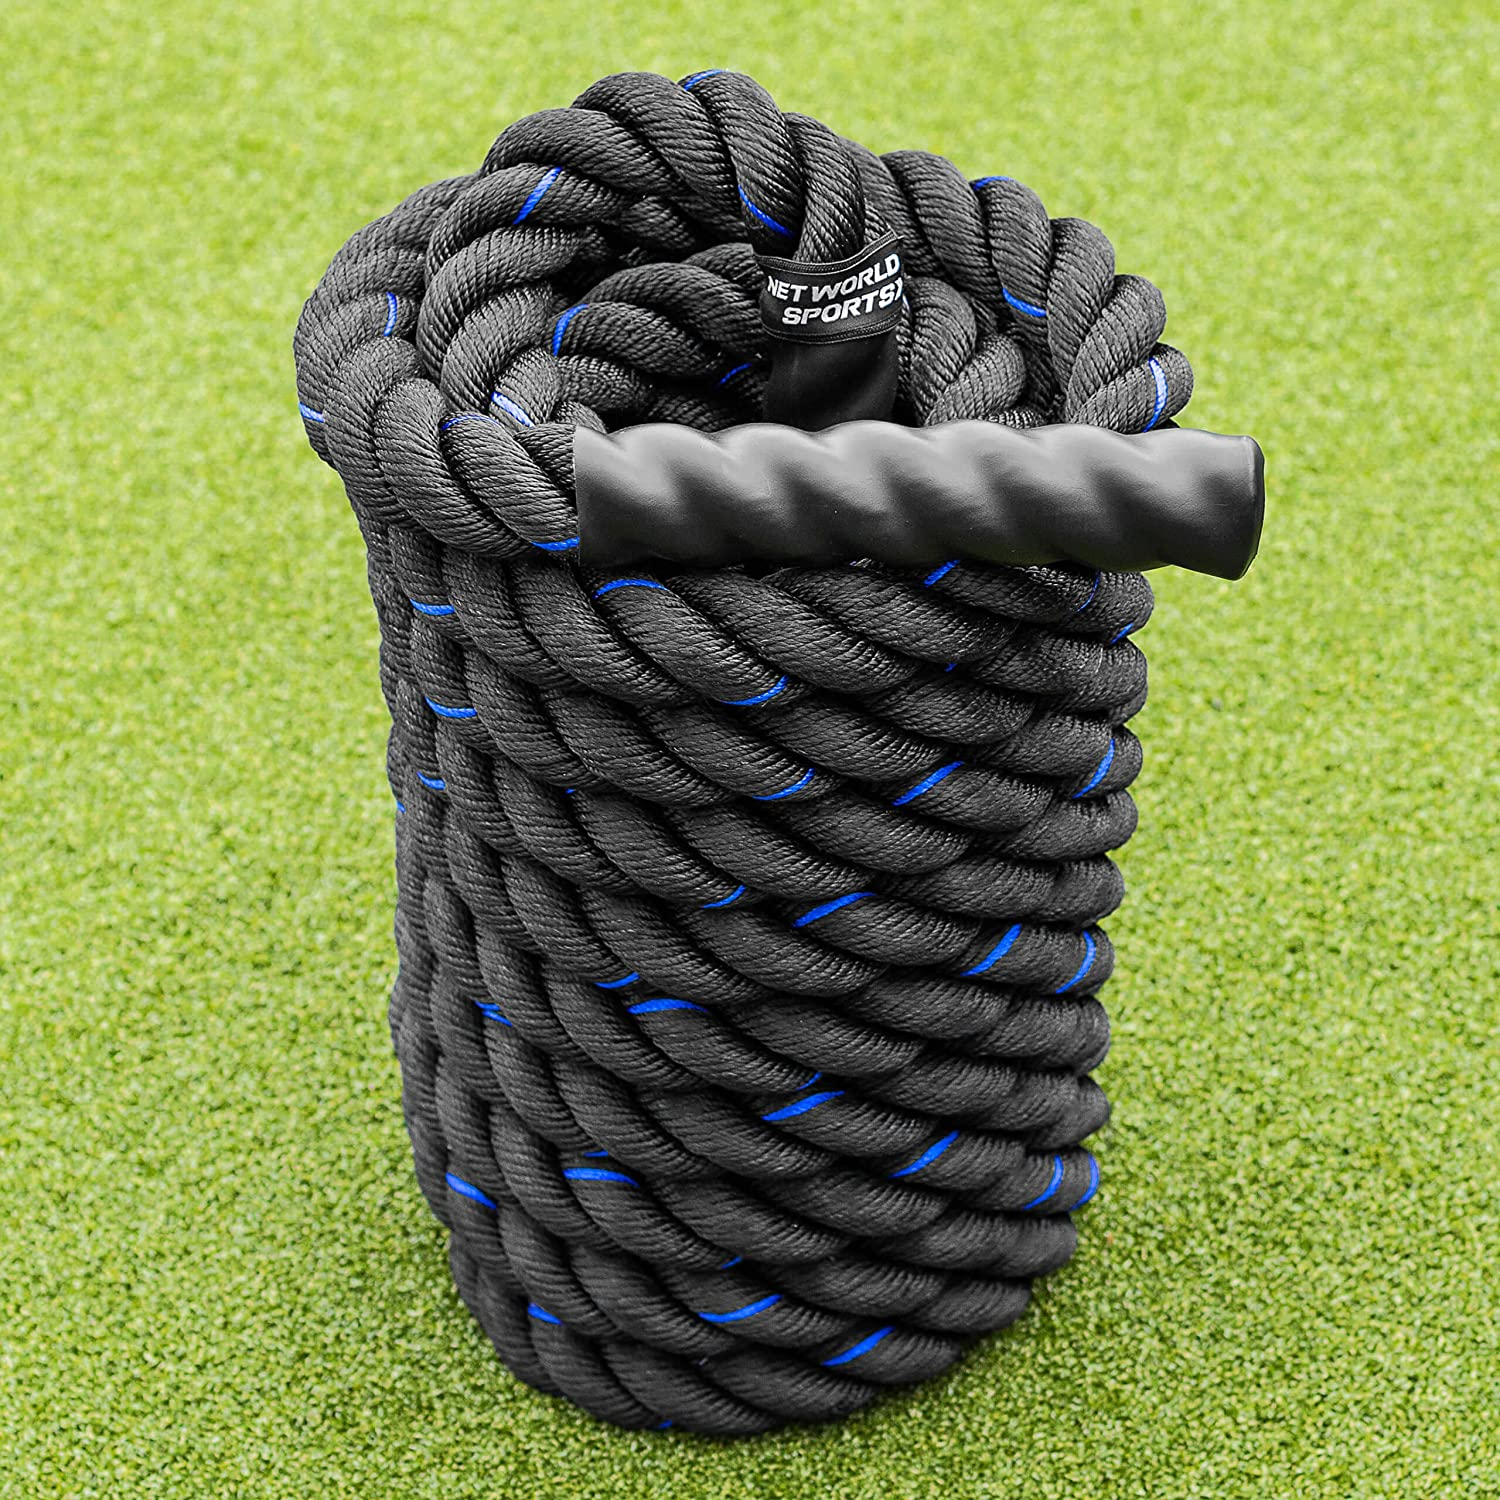 Details about  /30Ft Battle Rope 1.5/'/' Power Rope Exercise Strength Training Workout Undulation